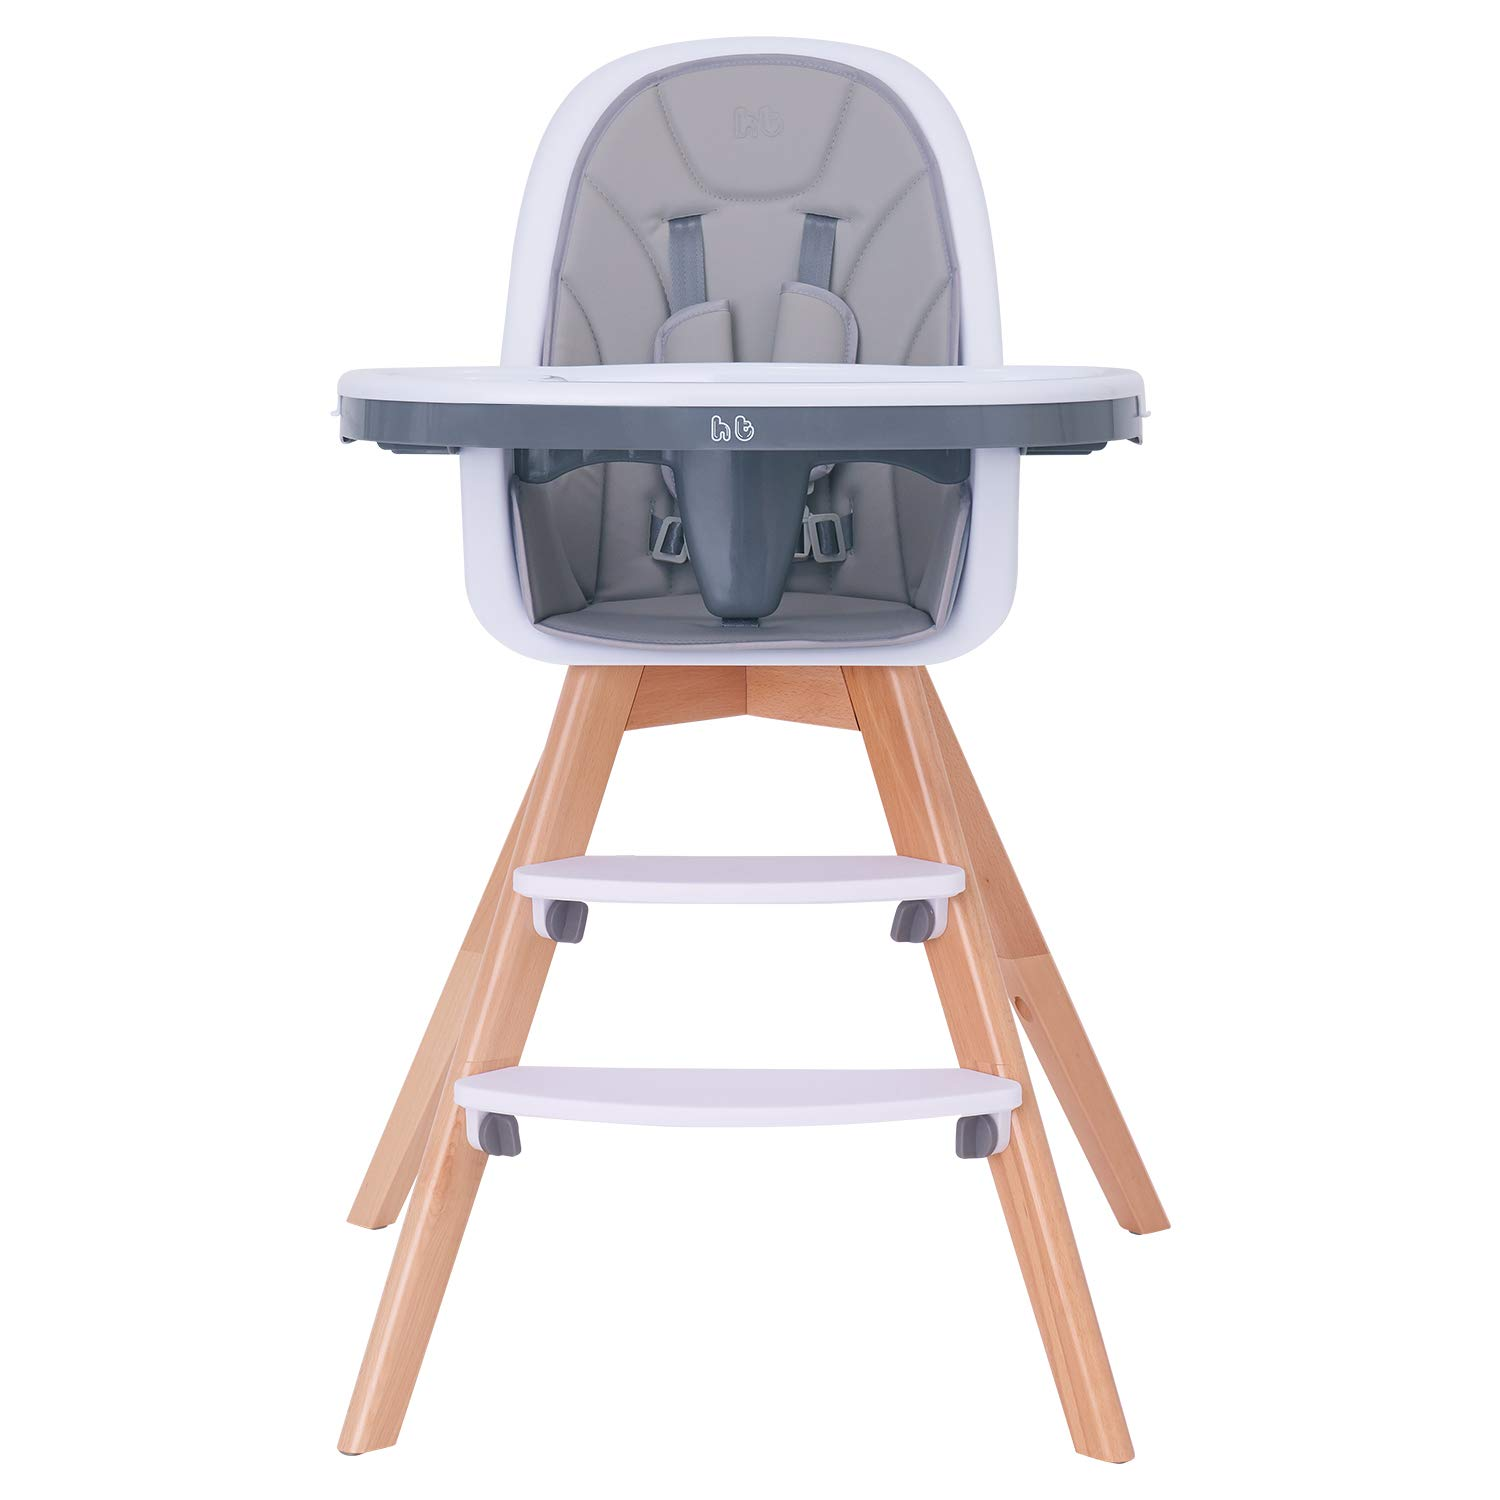 Baby High Chair, Wooden High Chair with Removable Tray and Adjustable Legs for Baby/Infants/Toddlers by HM-tech